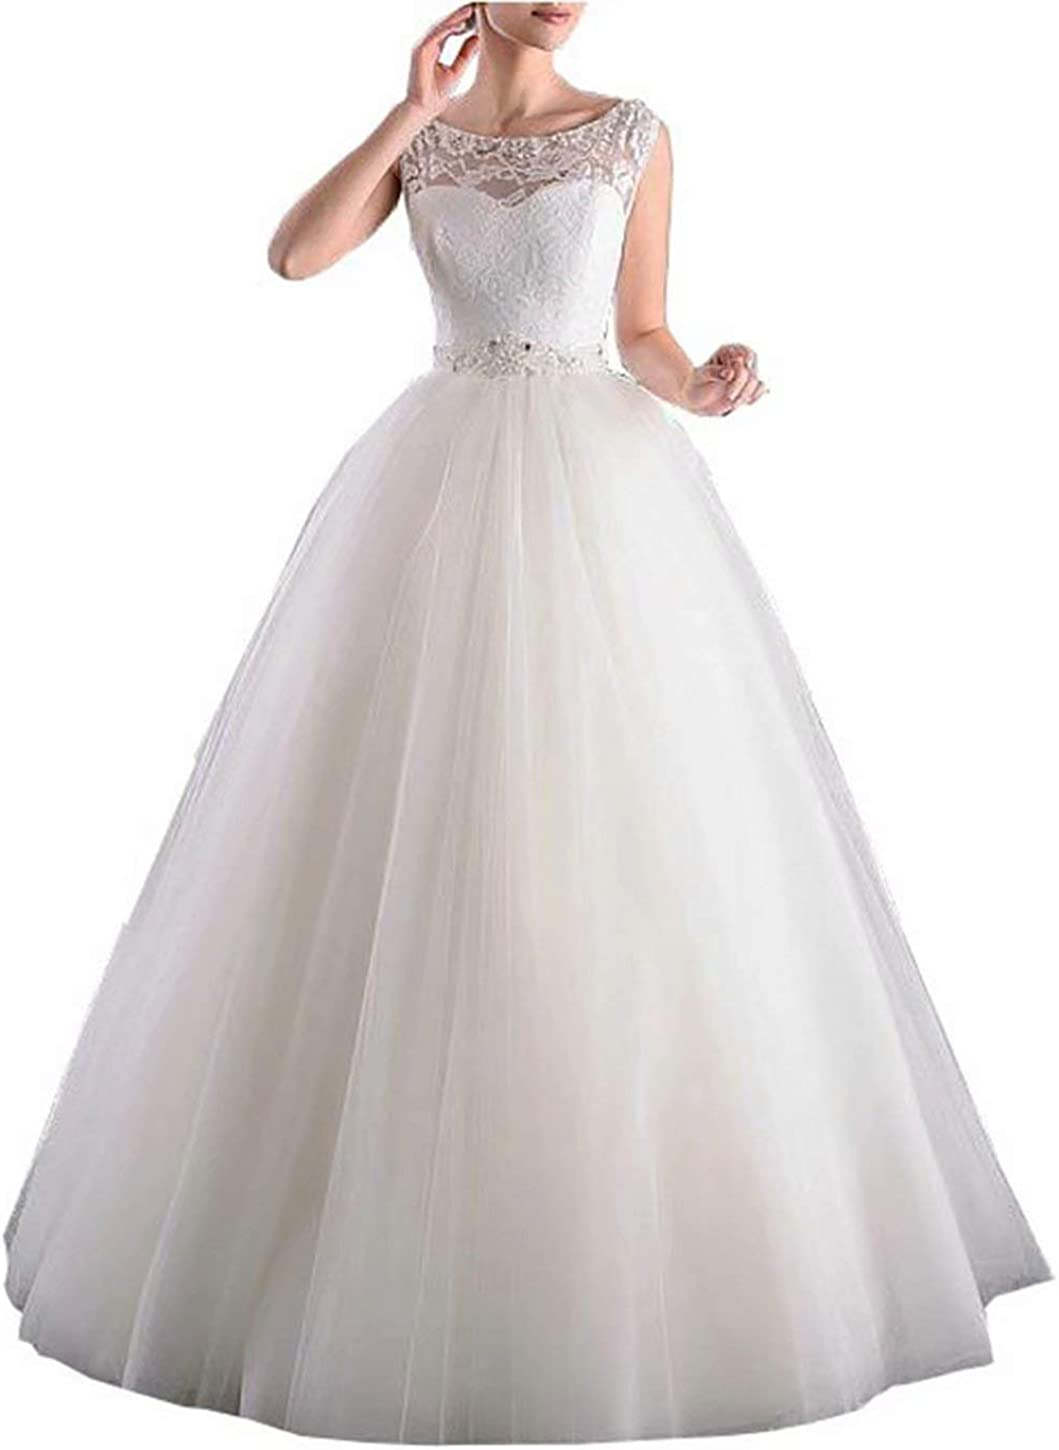 Skynia Women Floor-Length White Chiffon with Lace Top A-line Wedding Dresses Elegant Low V-Back Wedding Bridal Gown